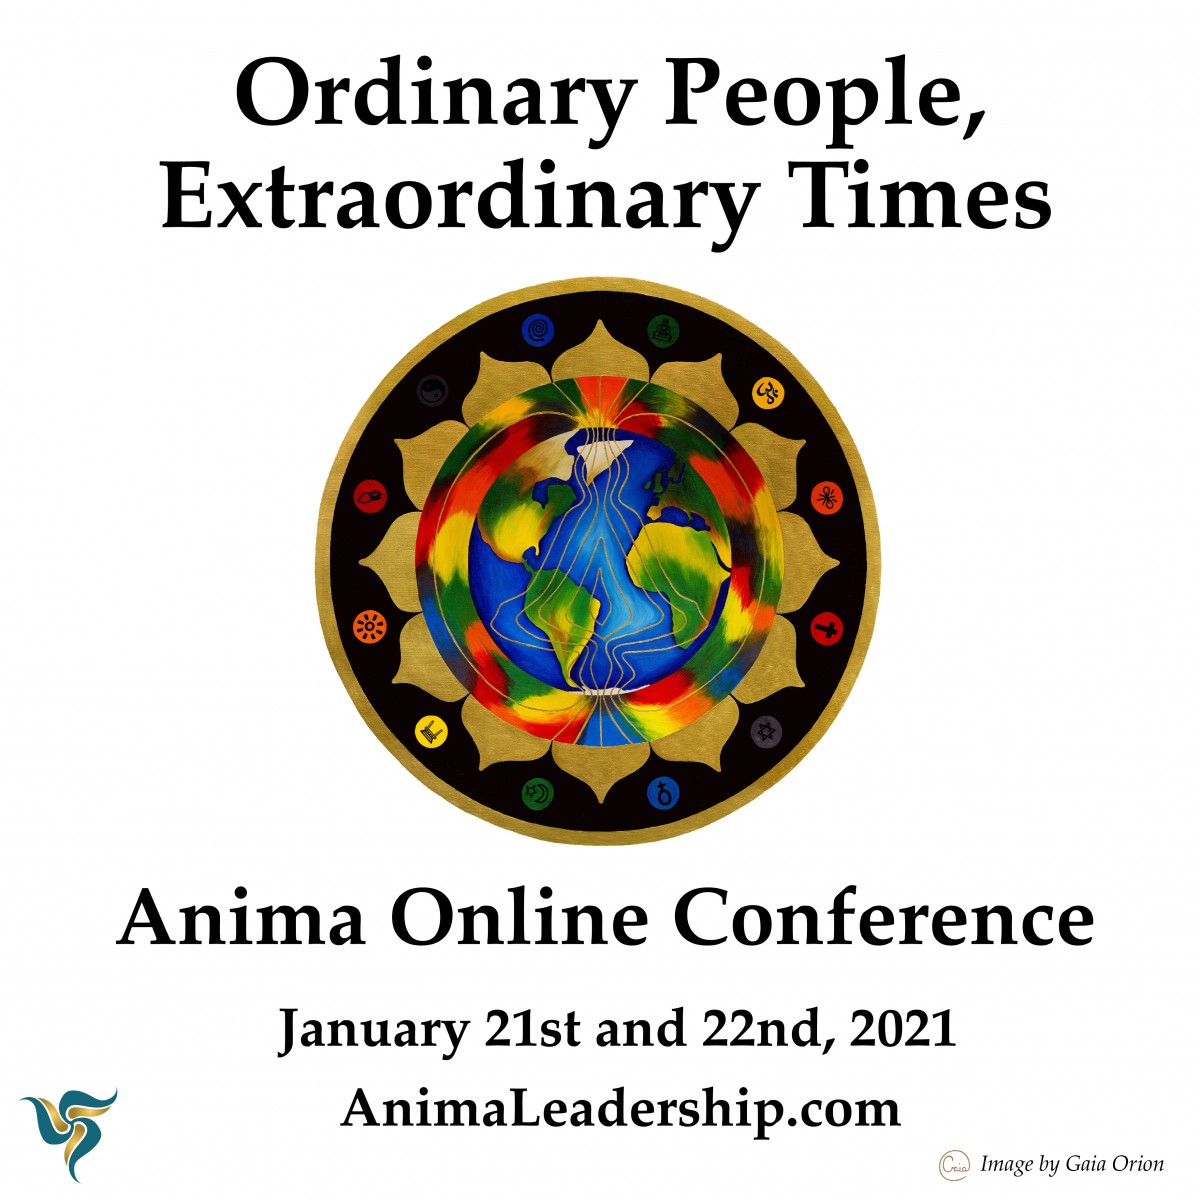 Anima Conference